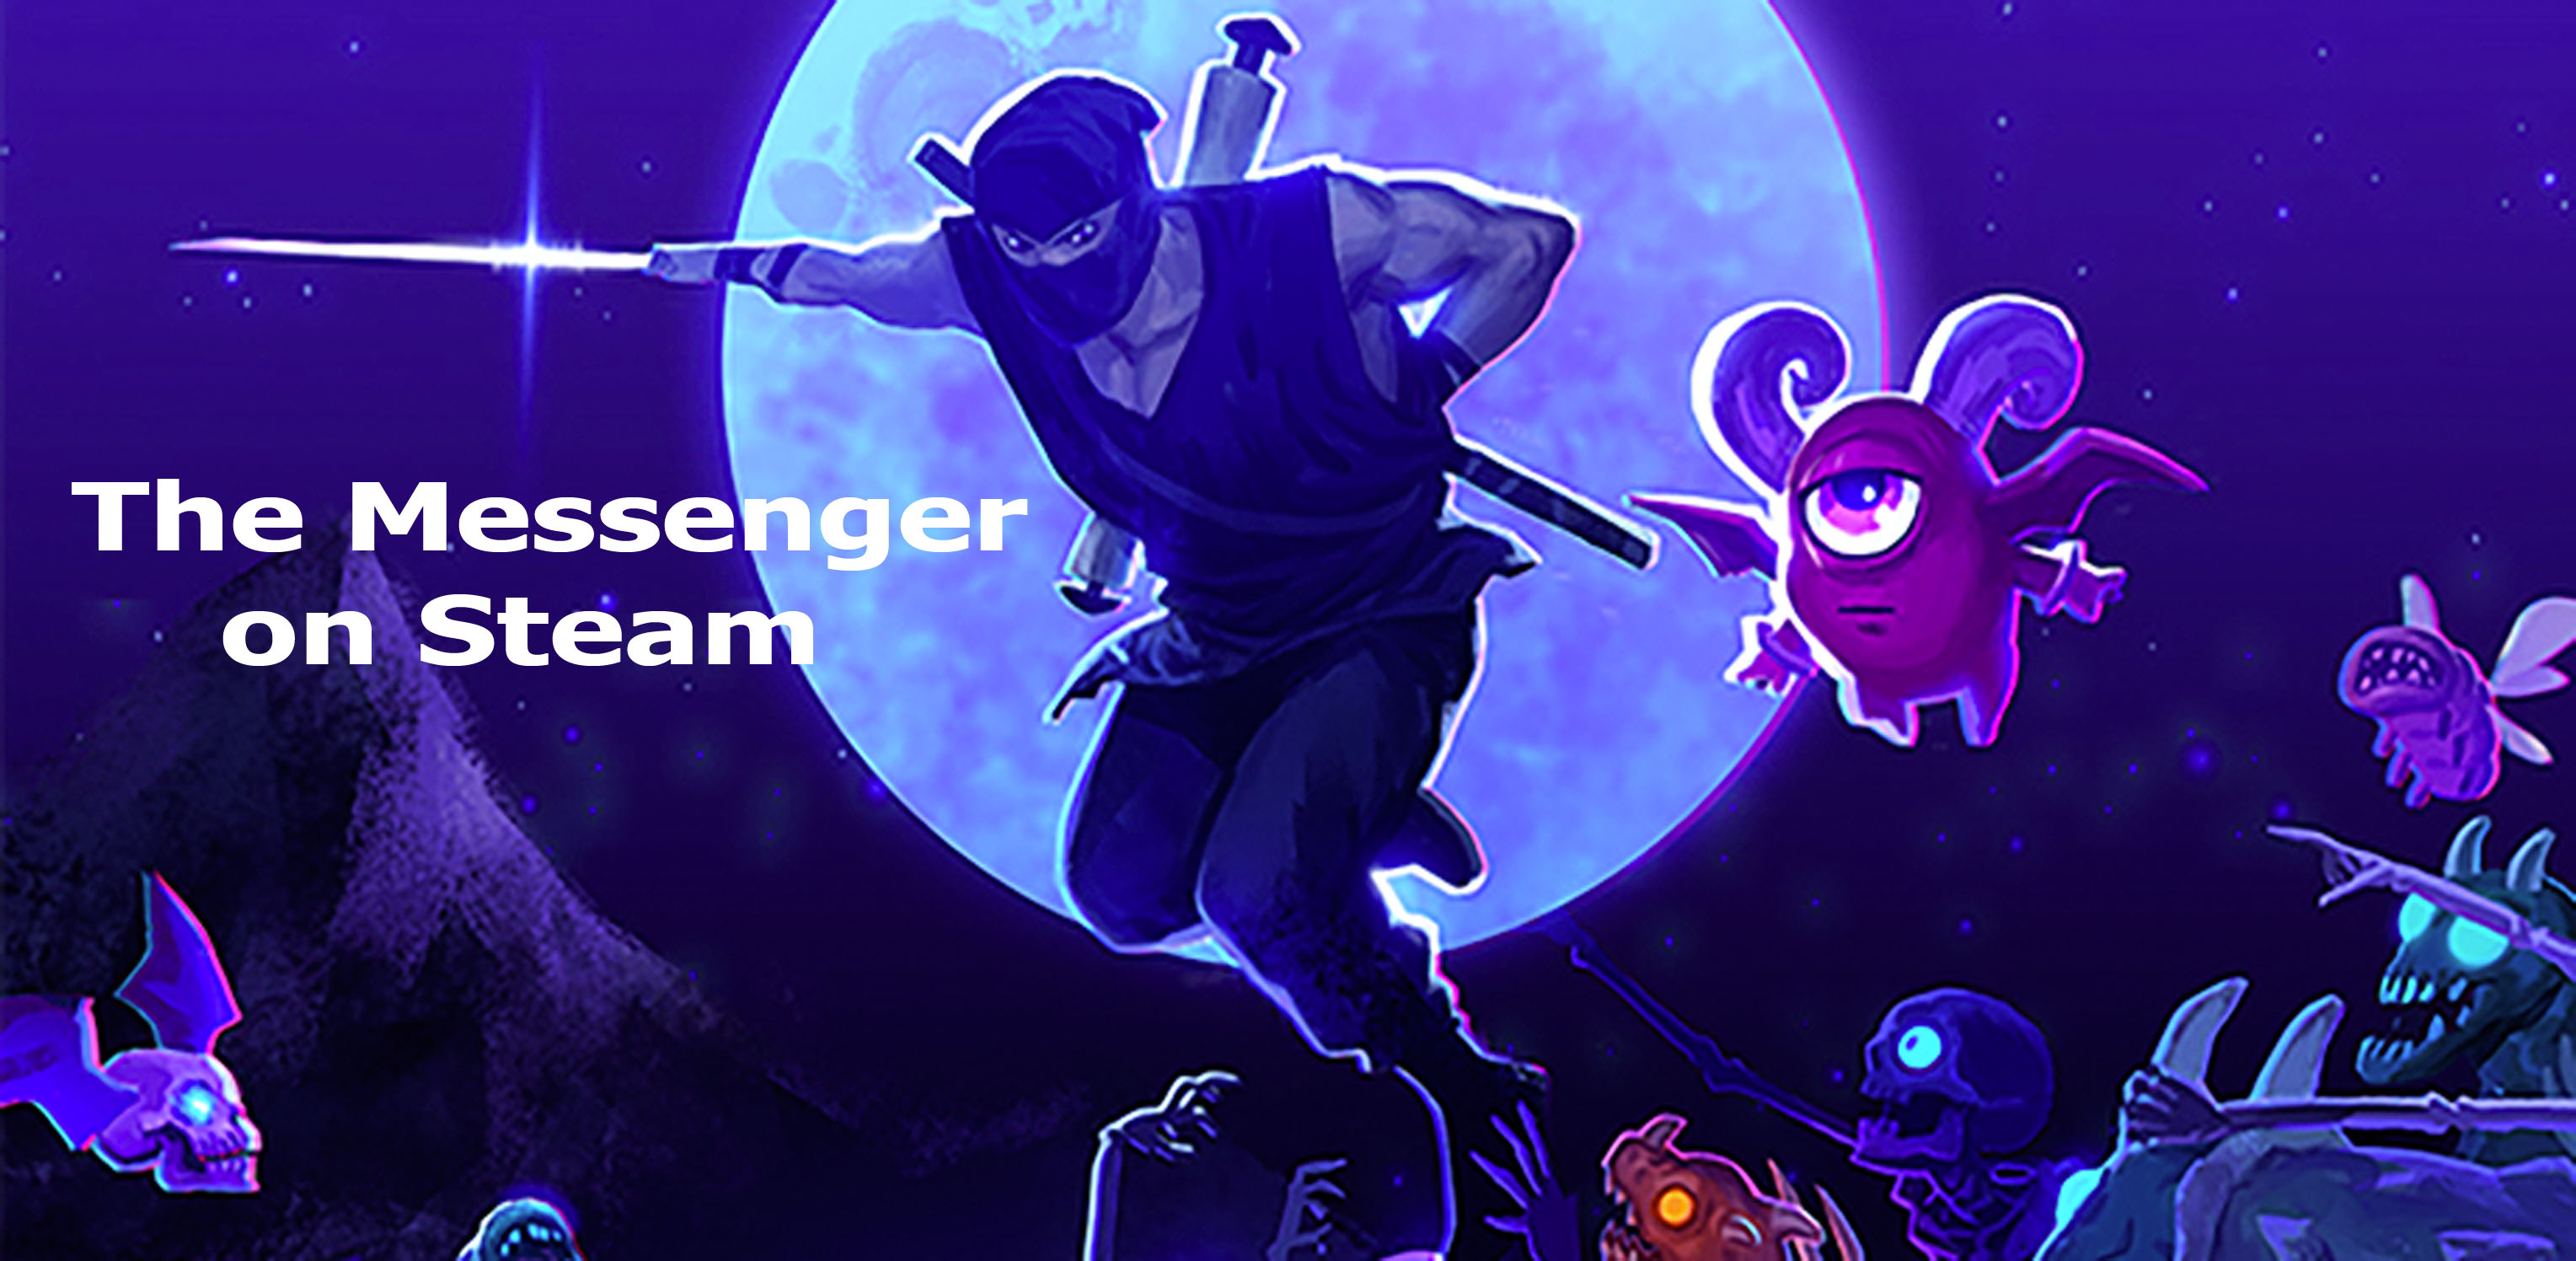 The Messenger on Steam - www.Steam.com